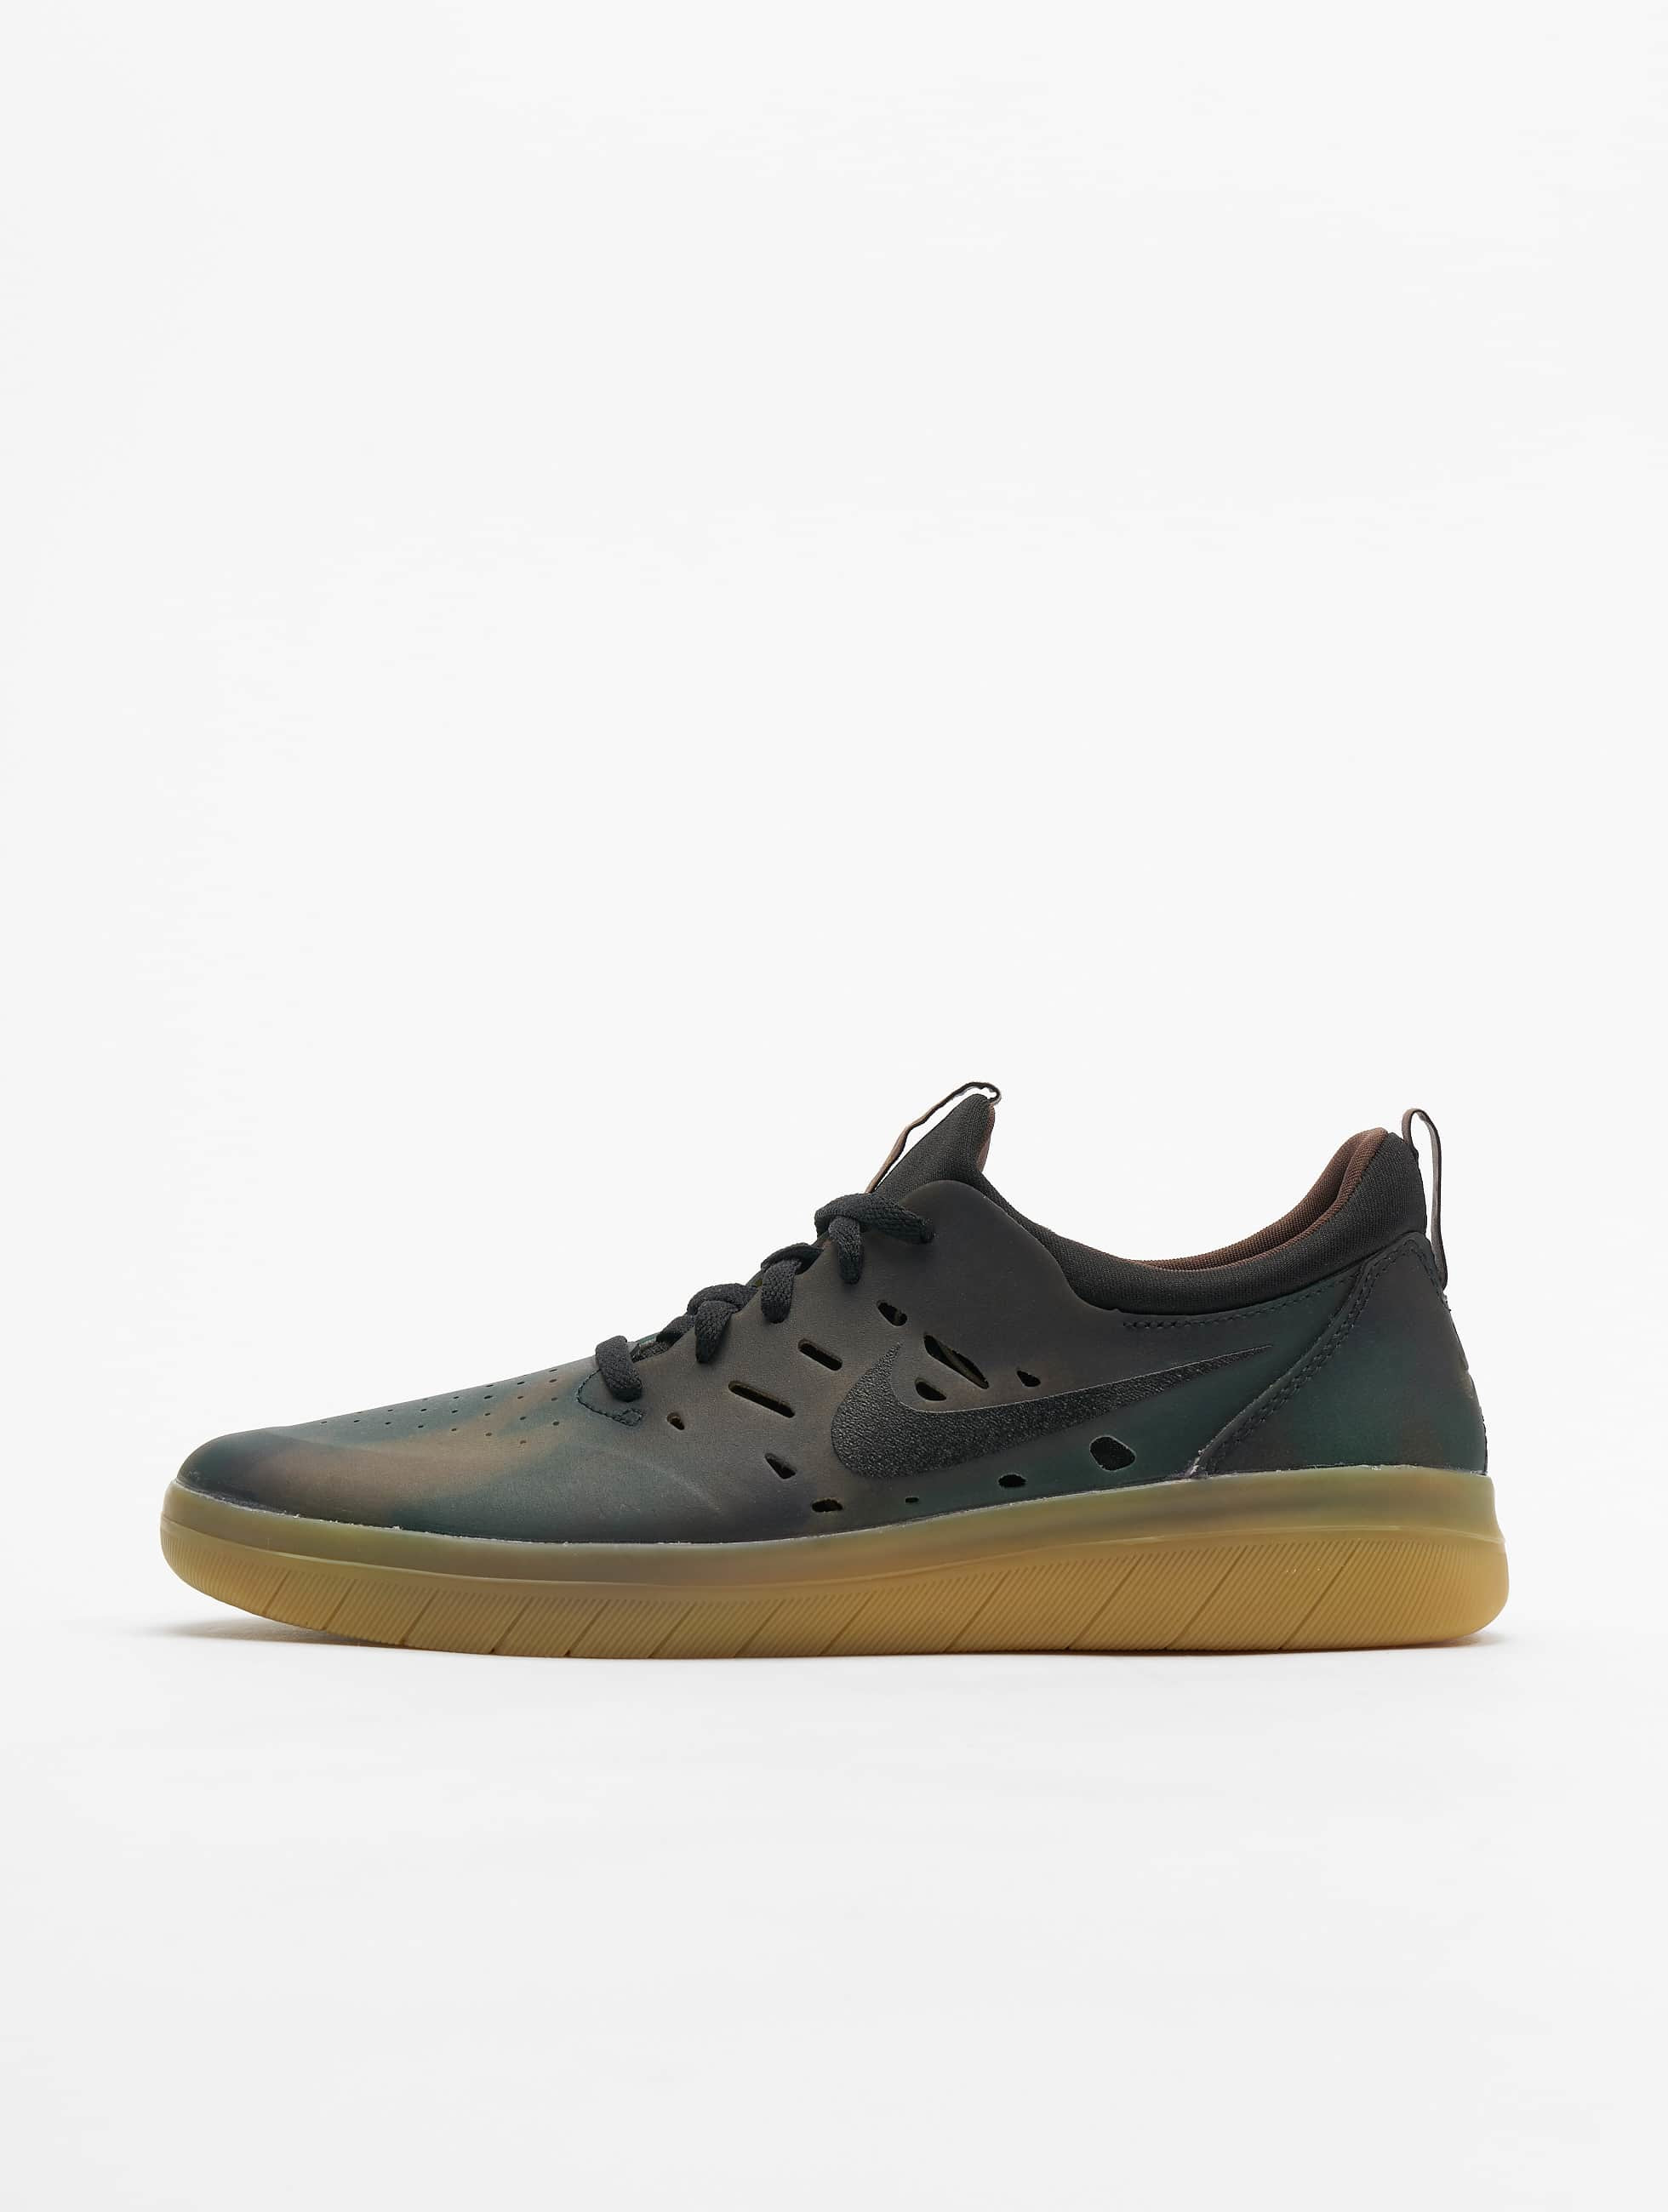 Nike SB Nyjah Free Premium Sneakers MultiColorBlackGum Light Brown